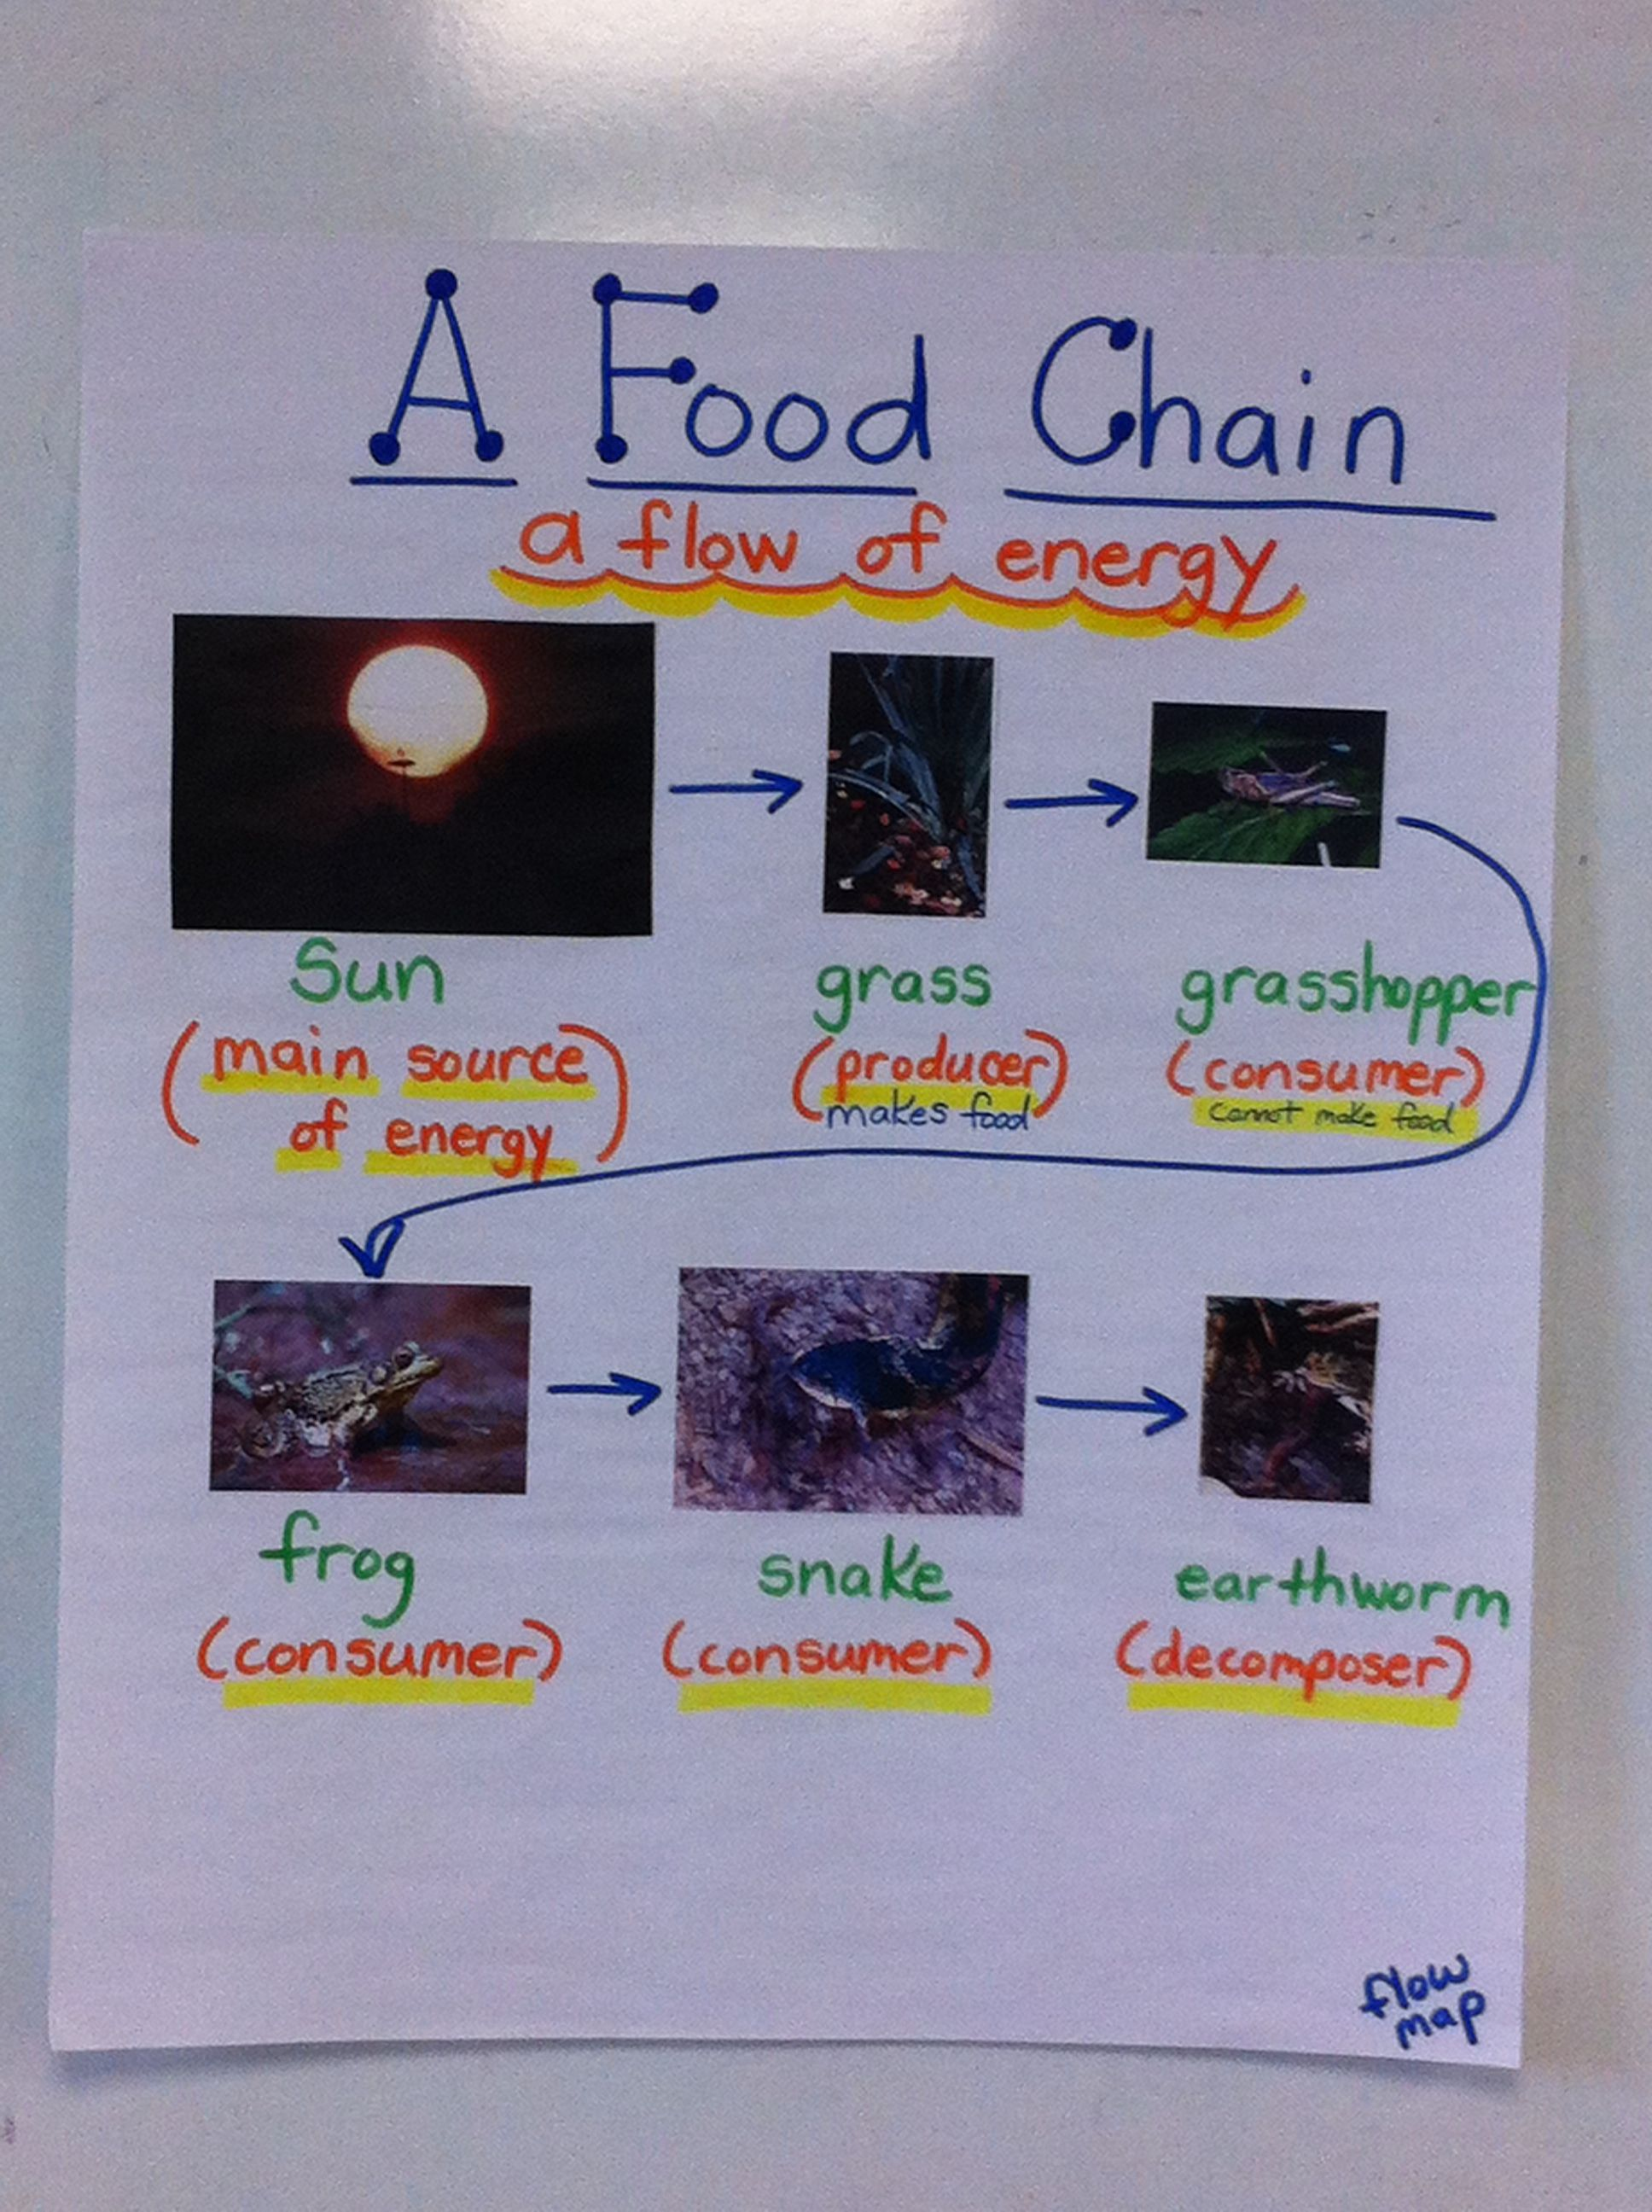 A Food Chain